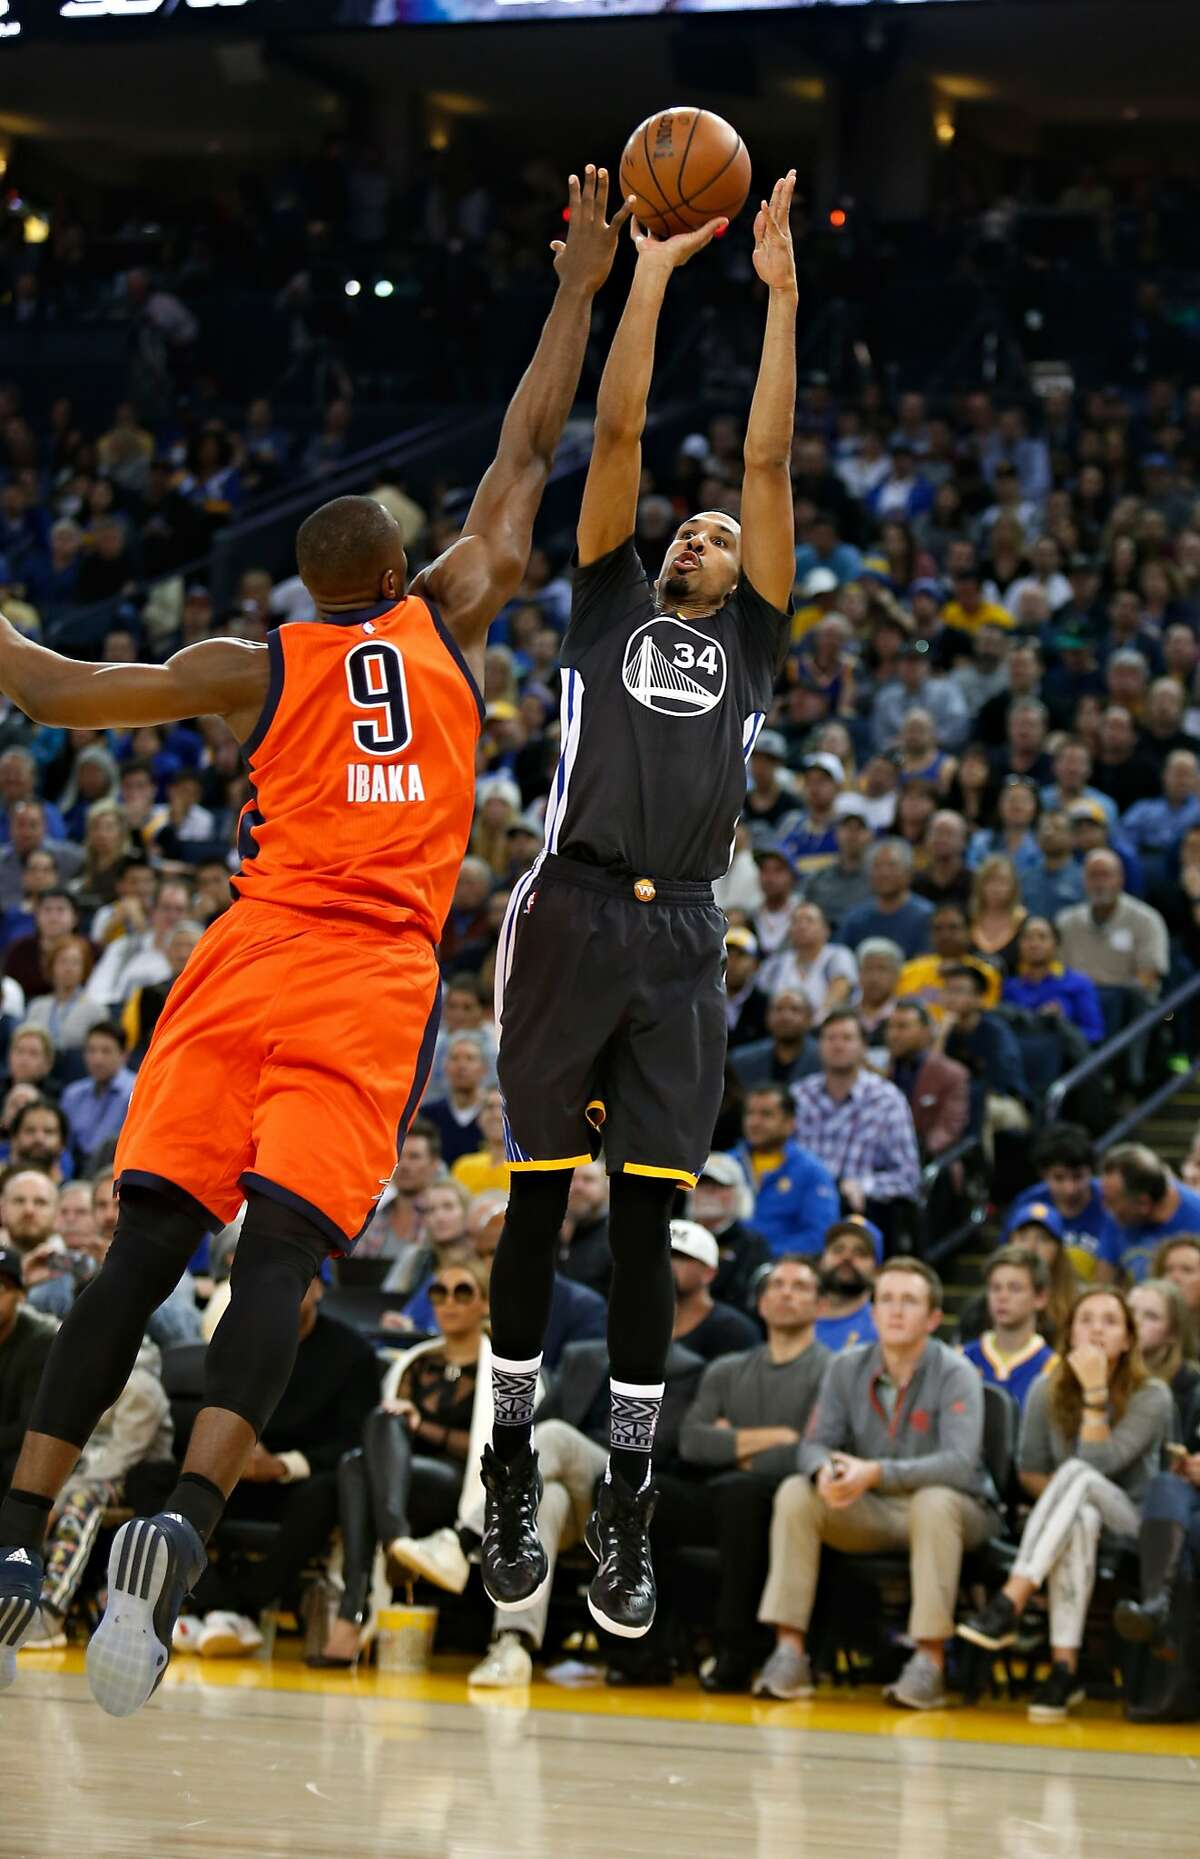 Golden State Warriors guard Shaun Livingston shoots a three pointer while being fouled by Oklahoma City Thunder forward Serge Ibaka during the second quarter of their basketball game on Saturday, February 6, 2016 in Oakland, Calif.